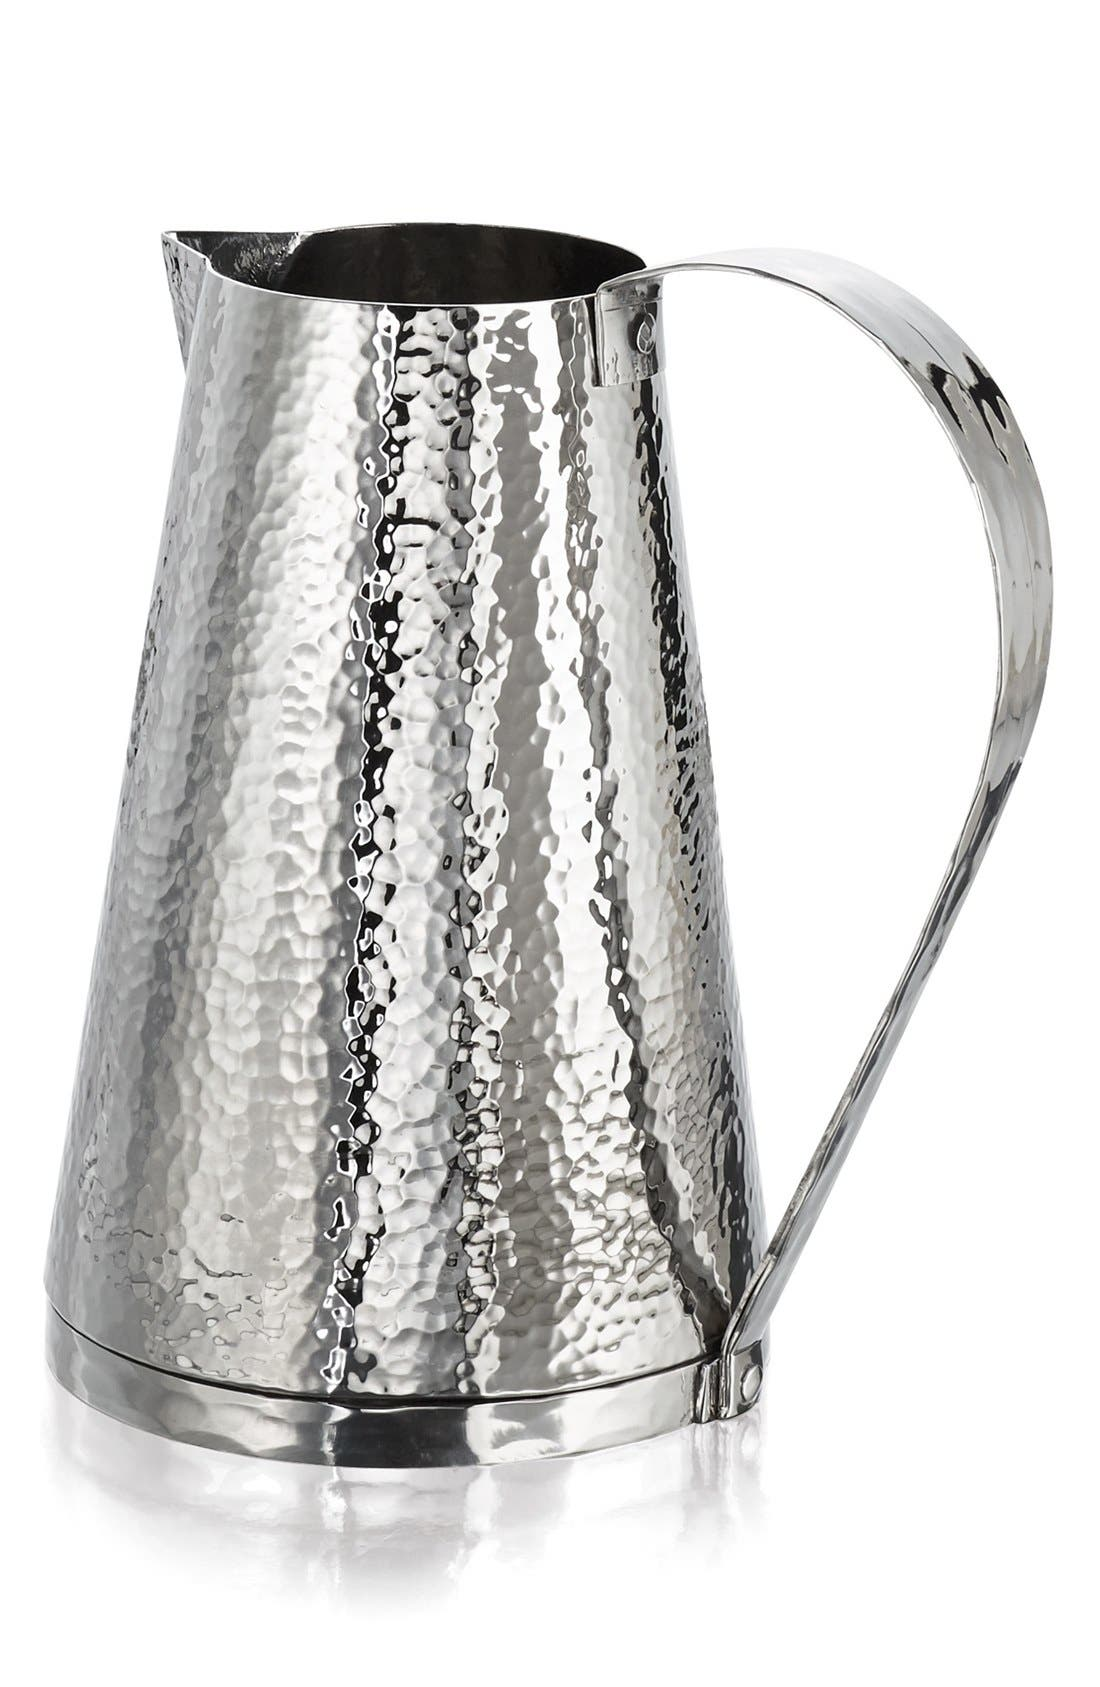 Alternate Image 1 Selected - Michael Aram 'Rivet' Hammered Stainless Steel Pitcher